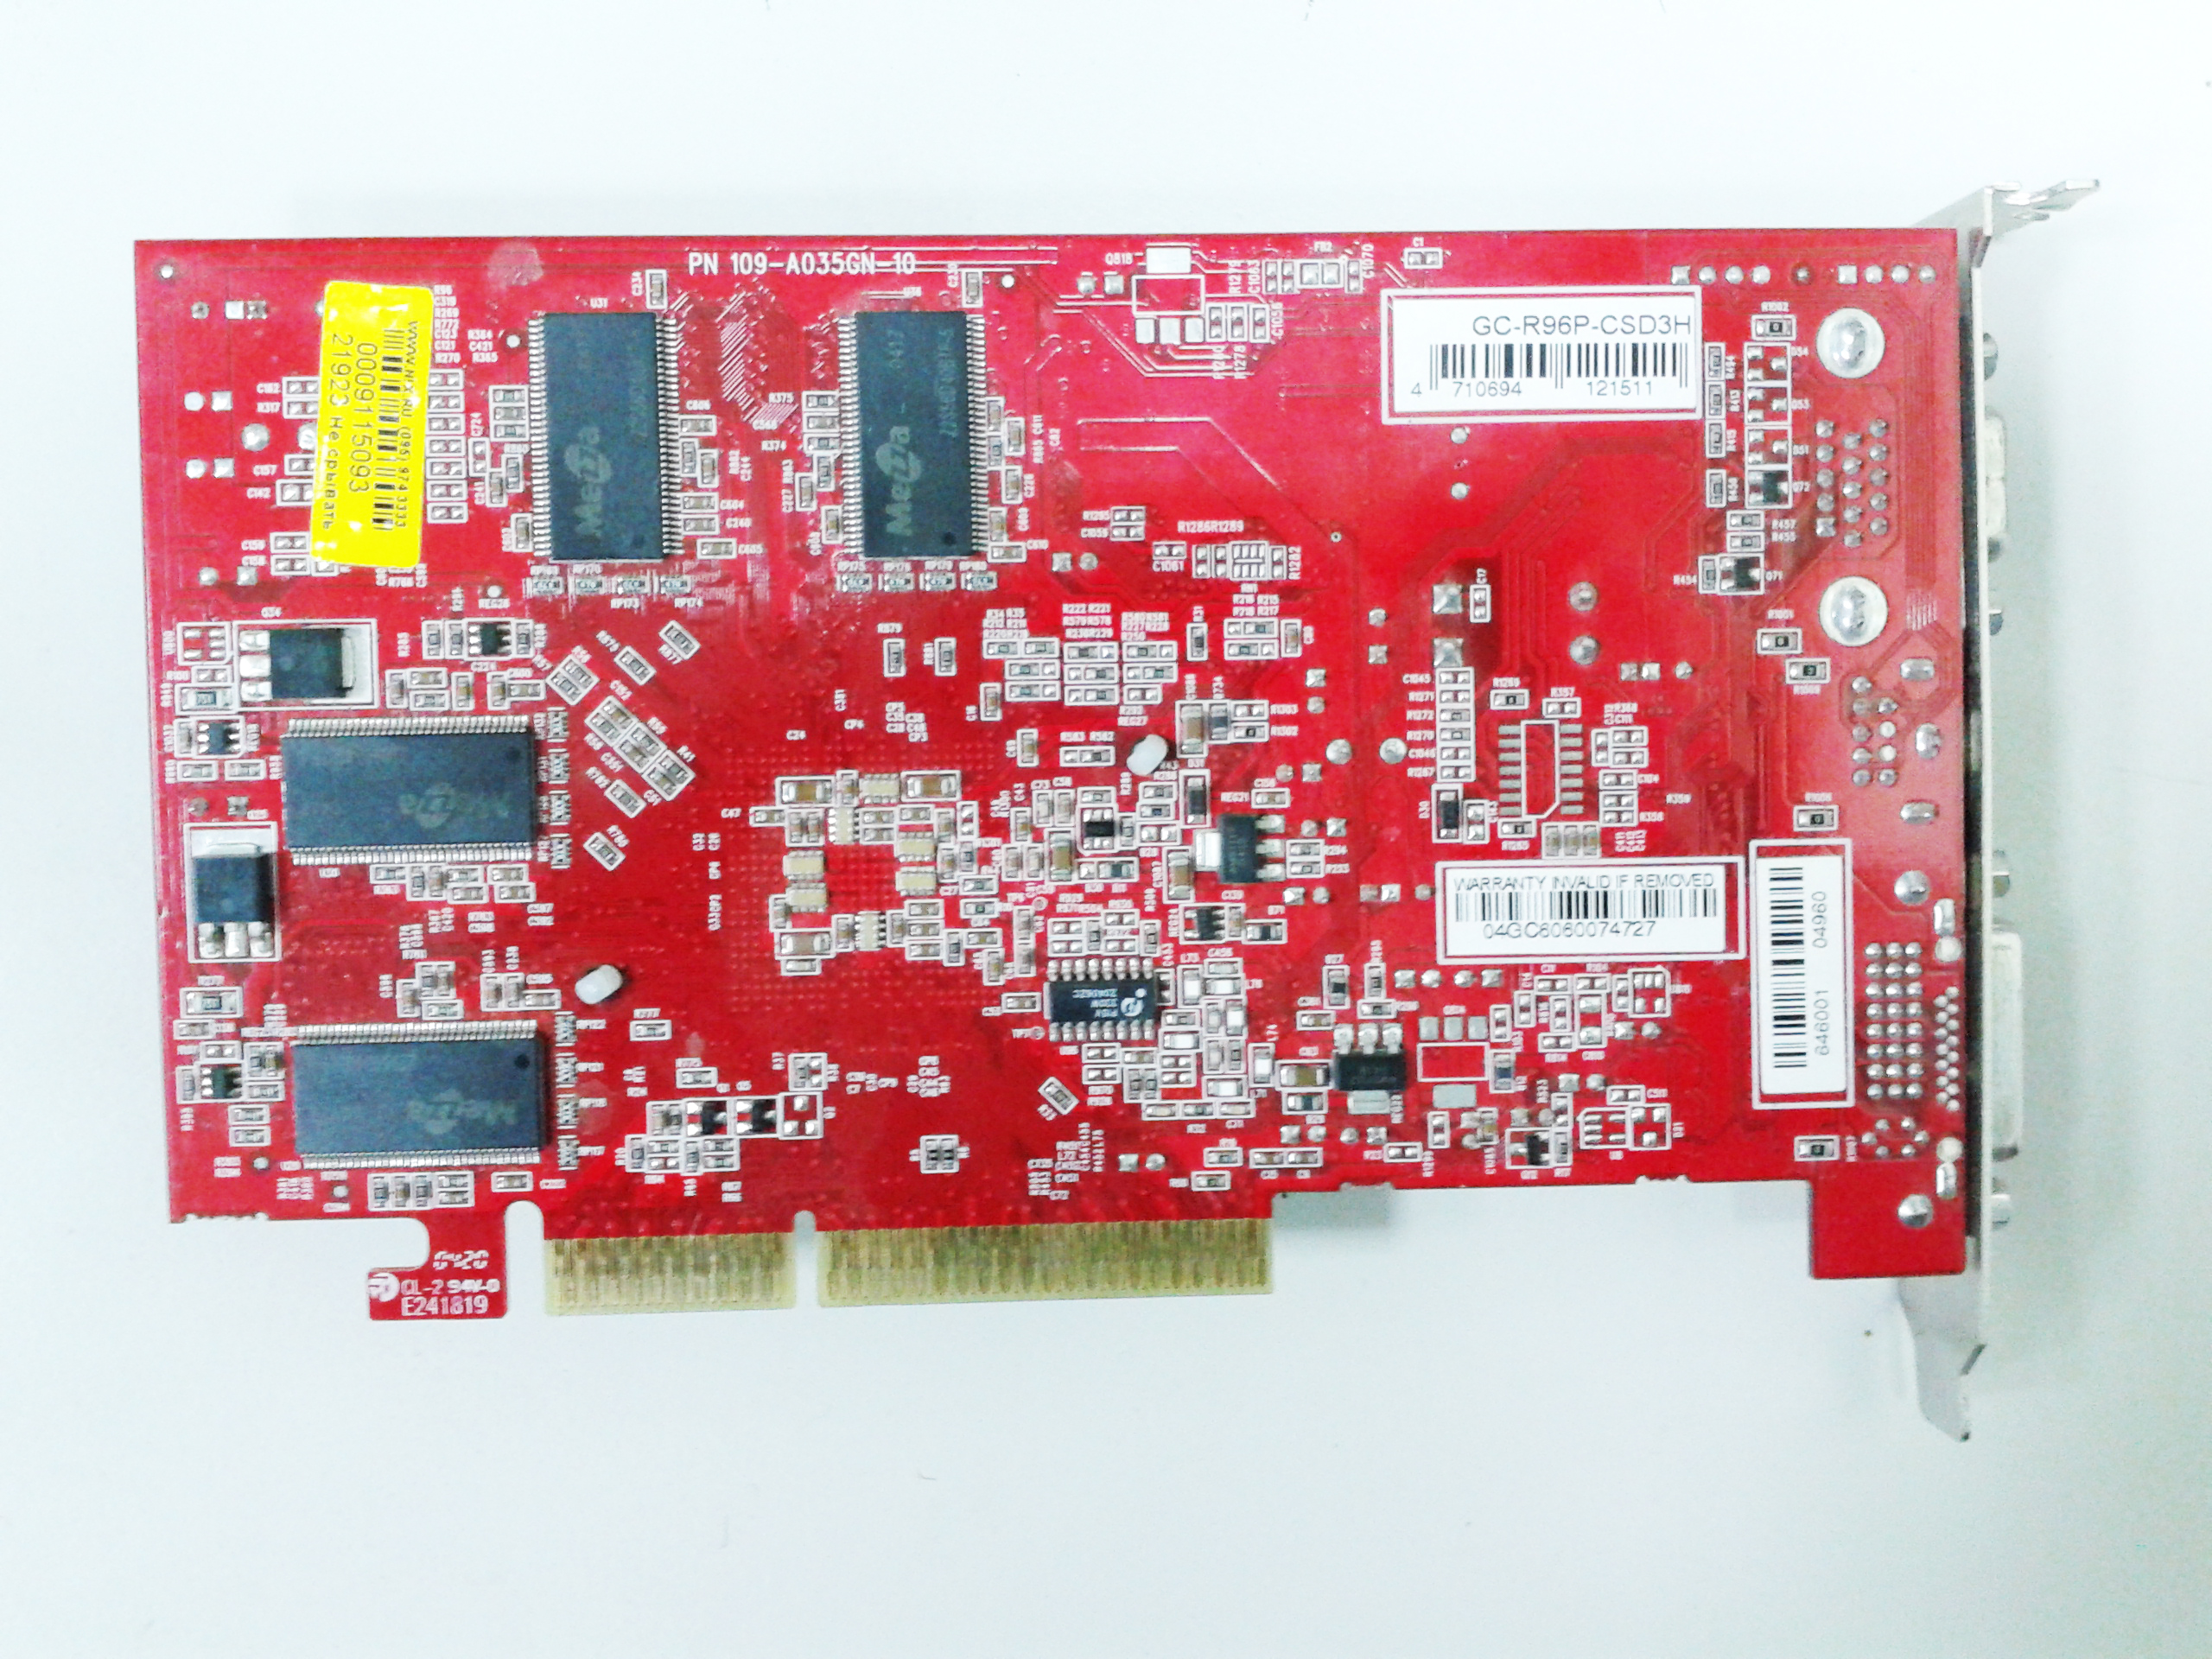 Bus width 256 mb dr / 128 bit core speed 400mhz memory speed 200 mhz x 2 output dvi/tv out/crt interface agp 4x/8x